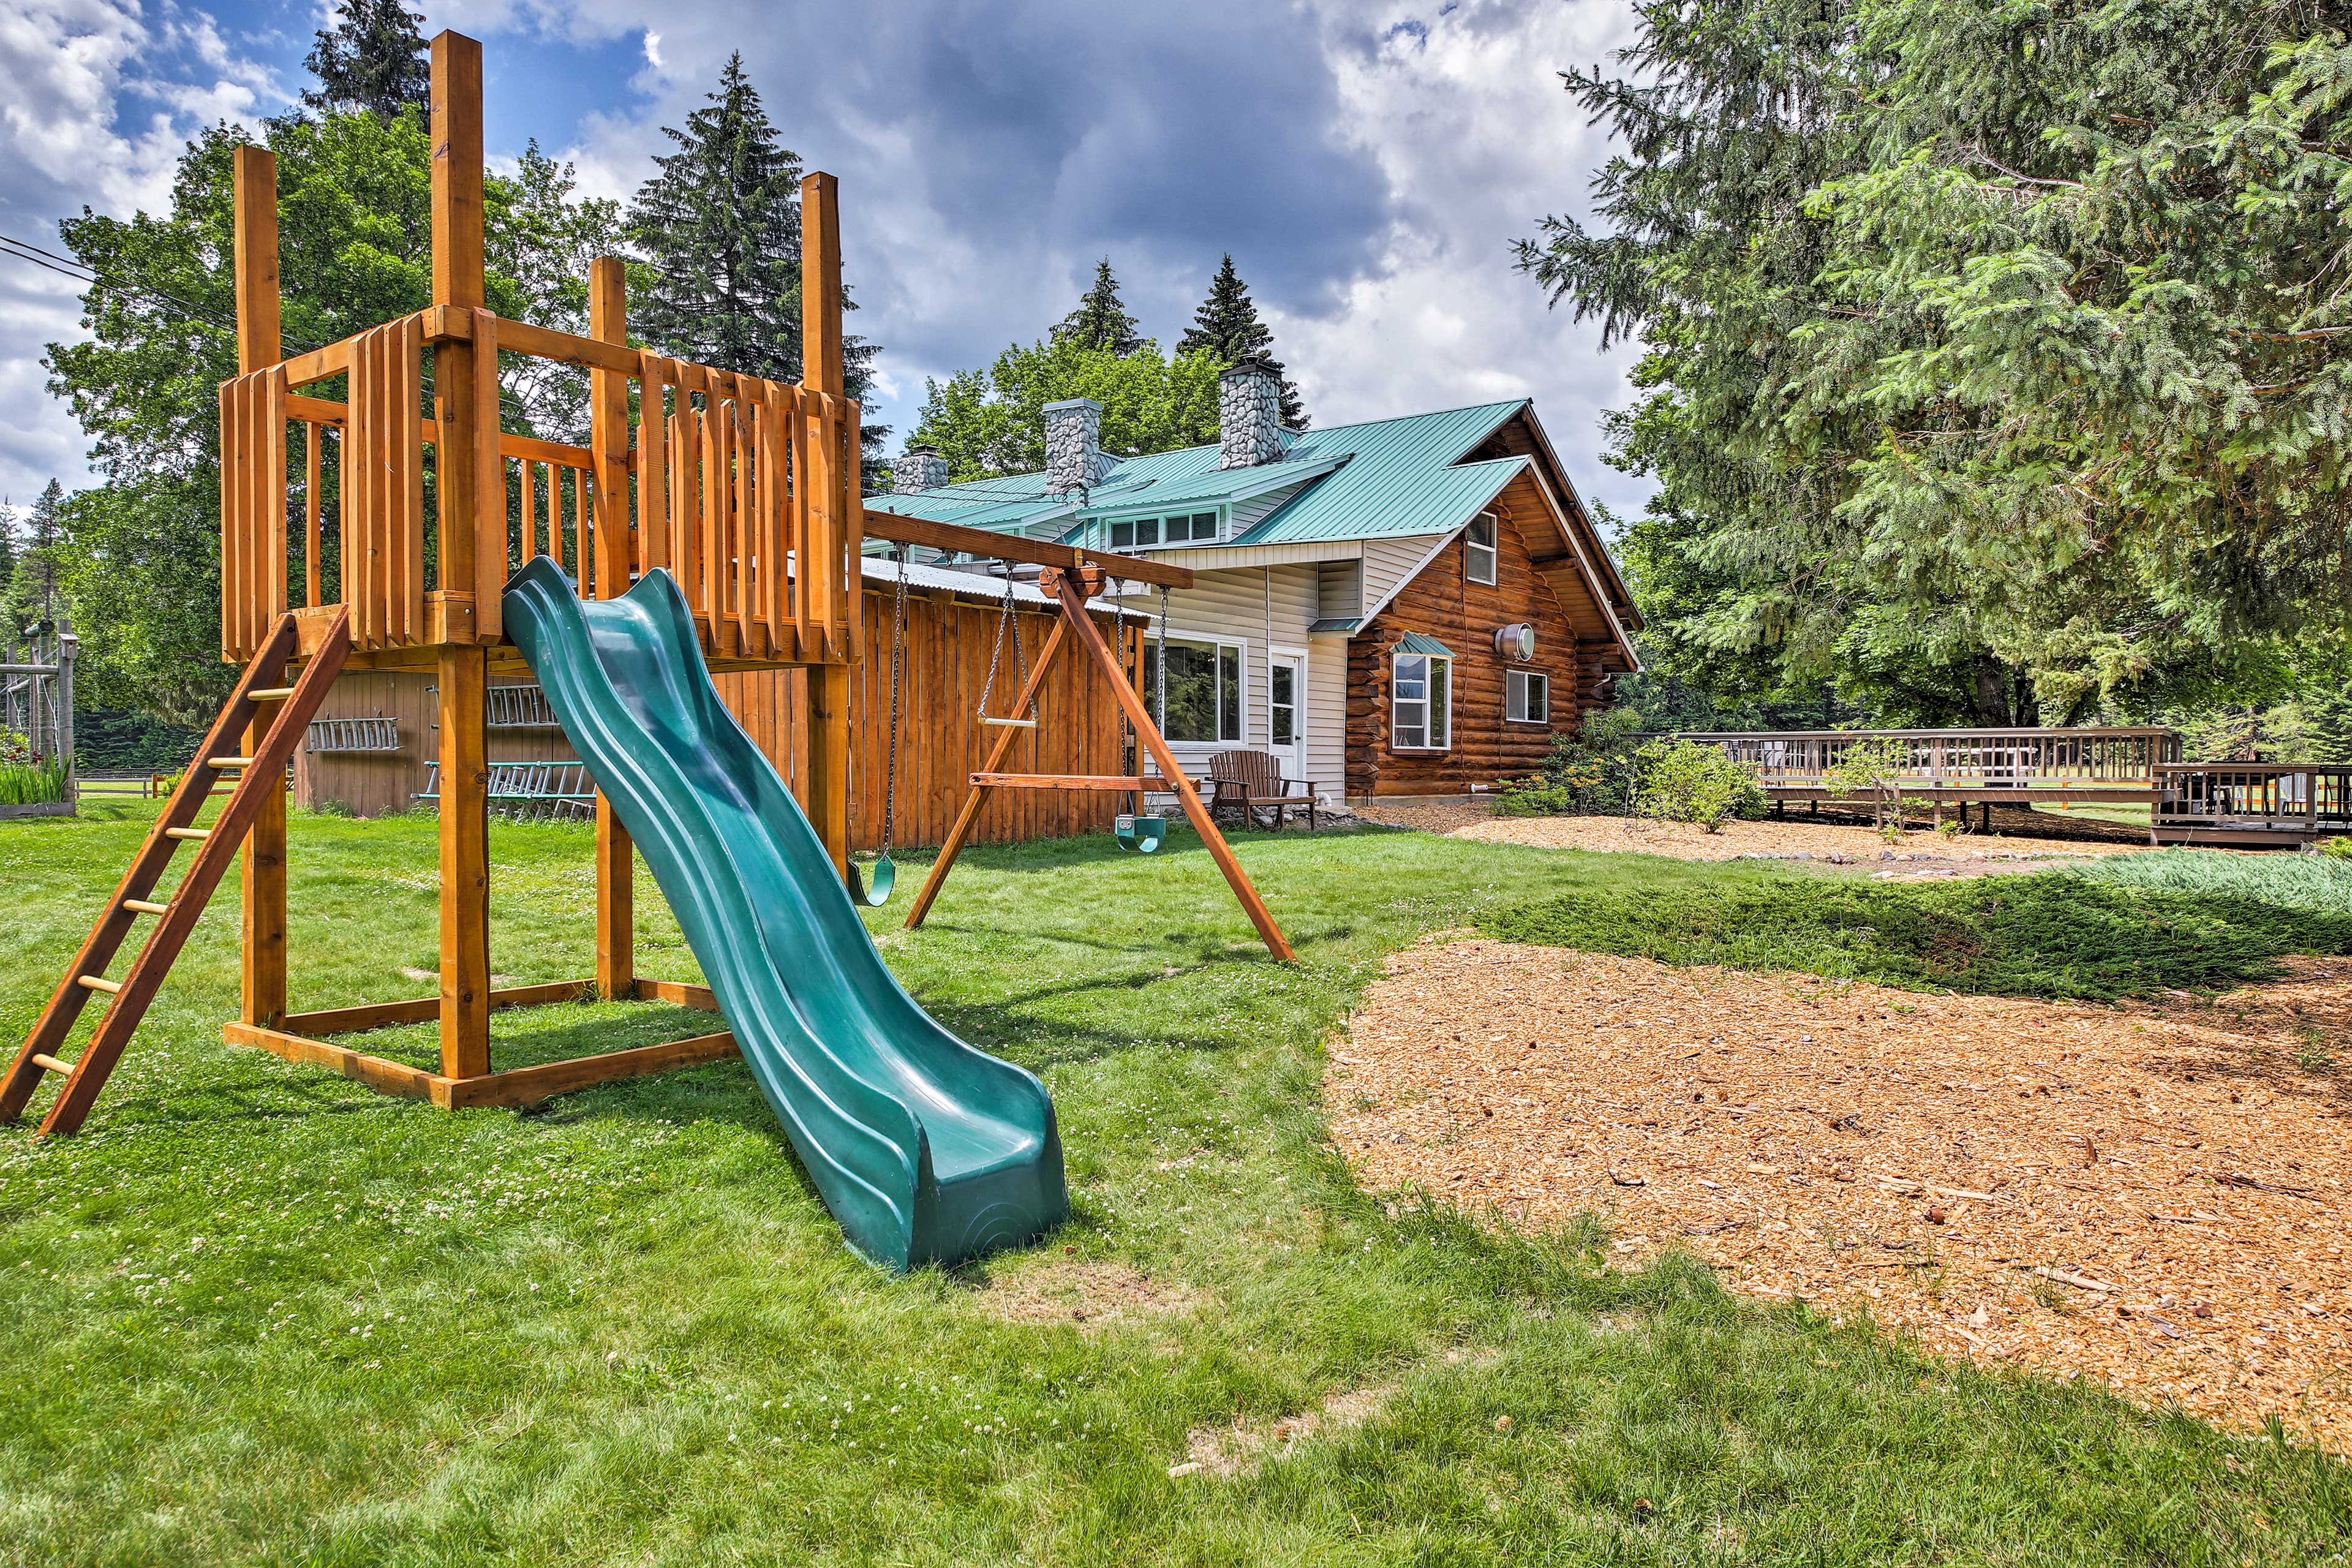 Kids will entertain themselves on this swing set.